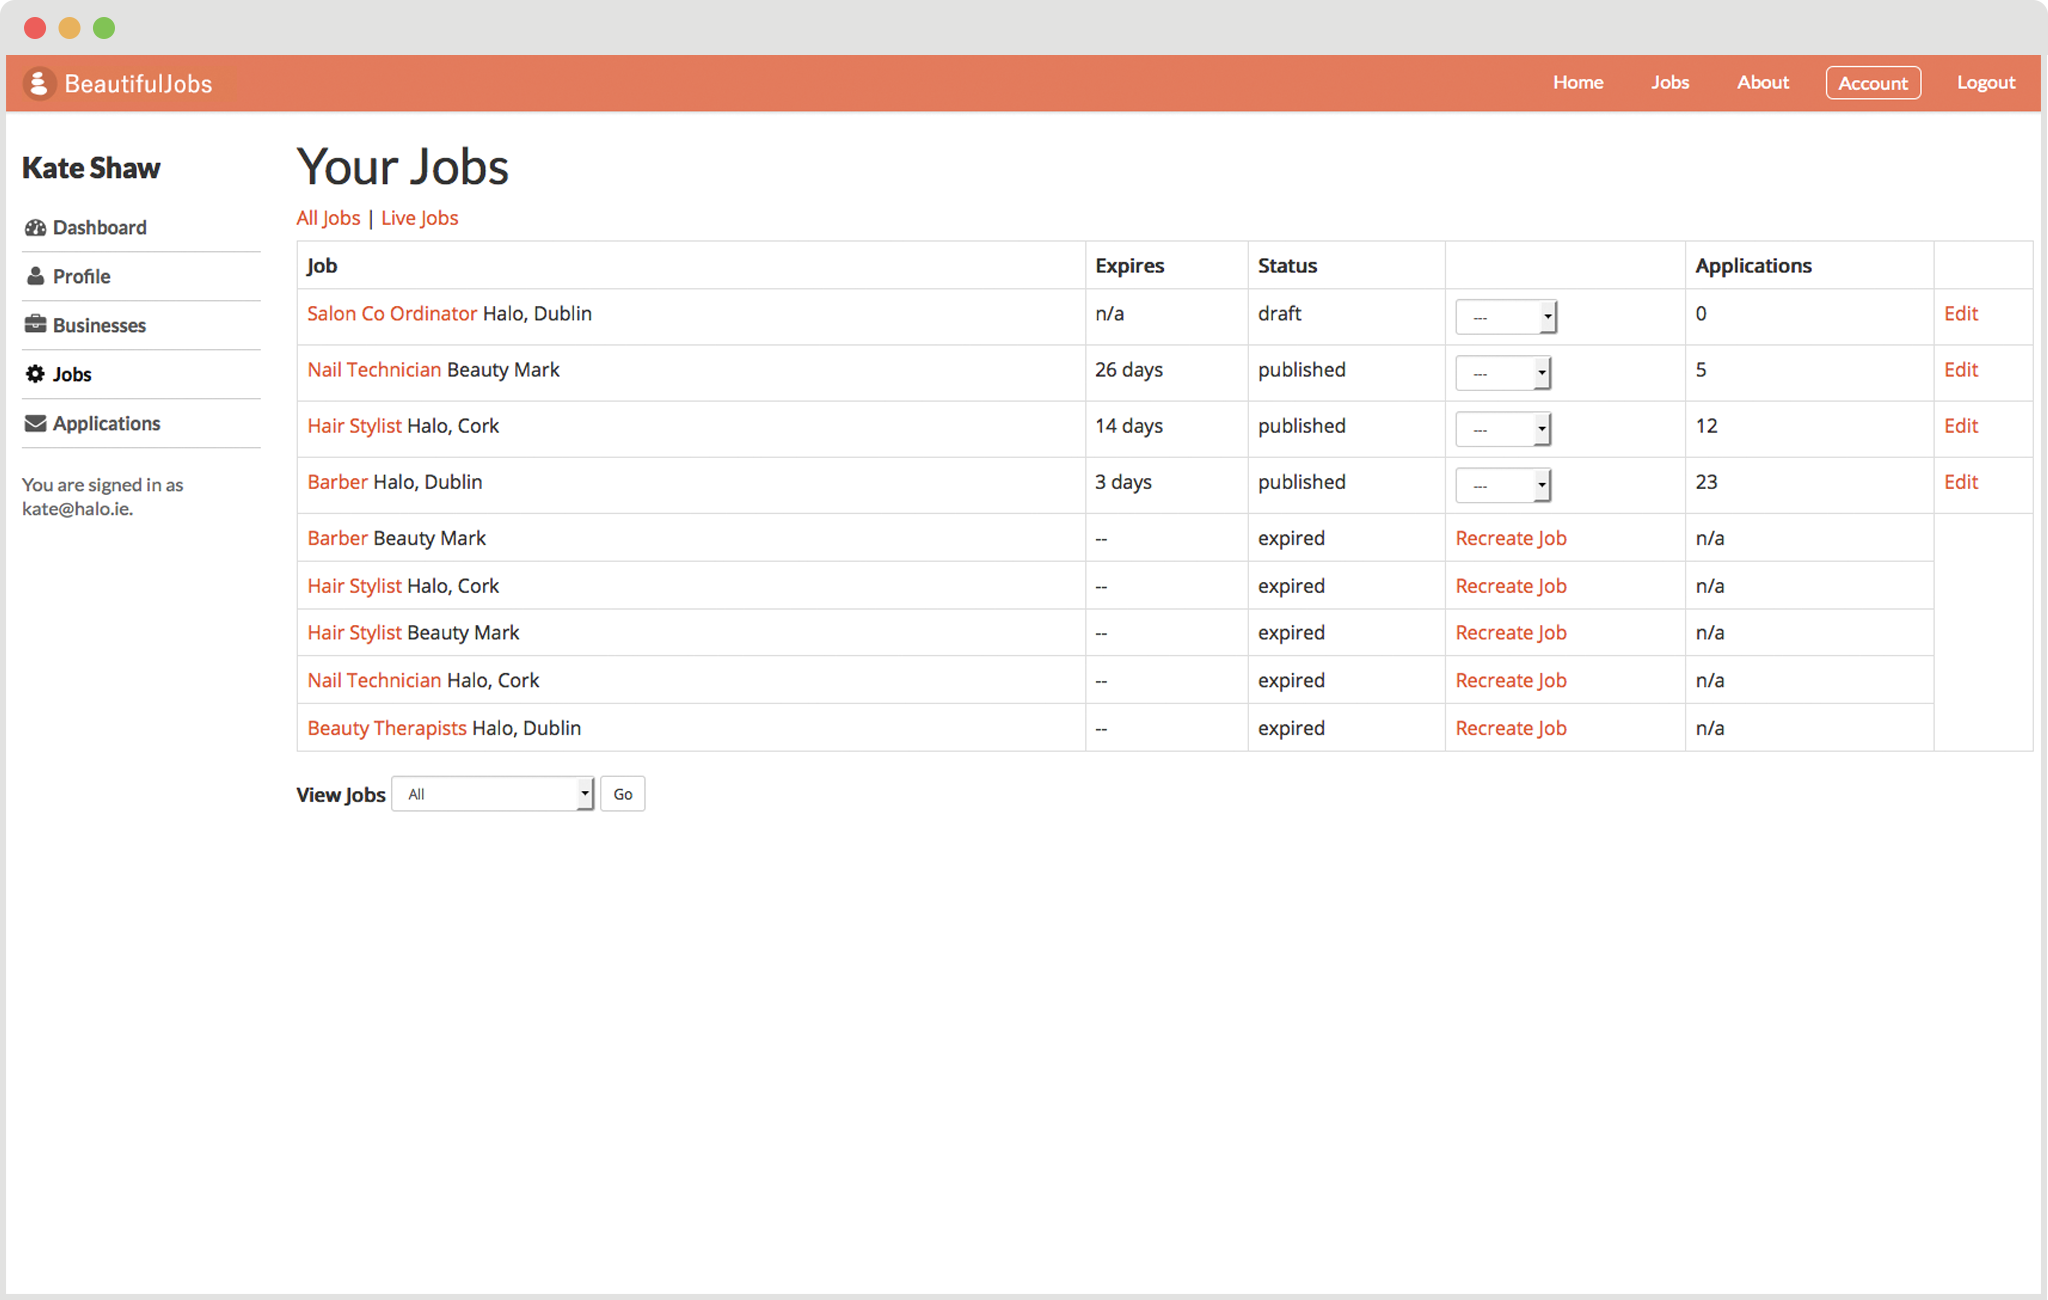 Your Jobs Screenshot